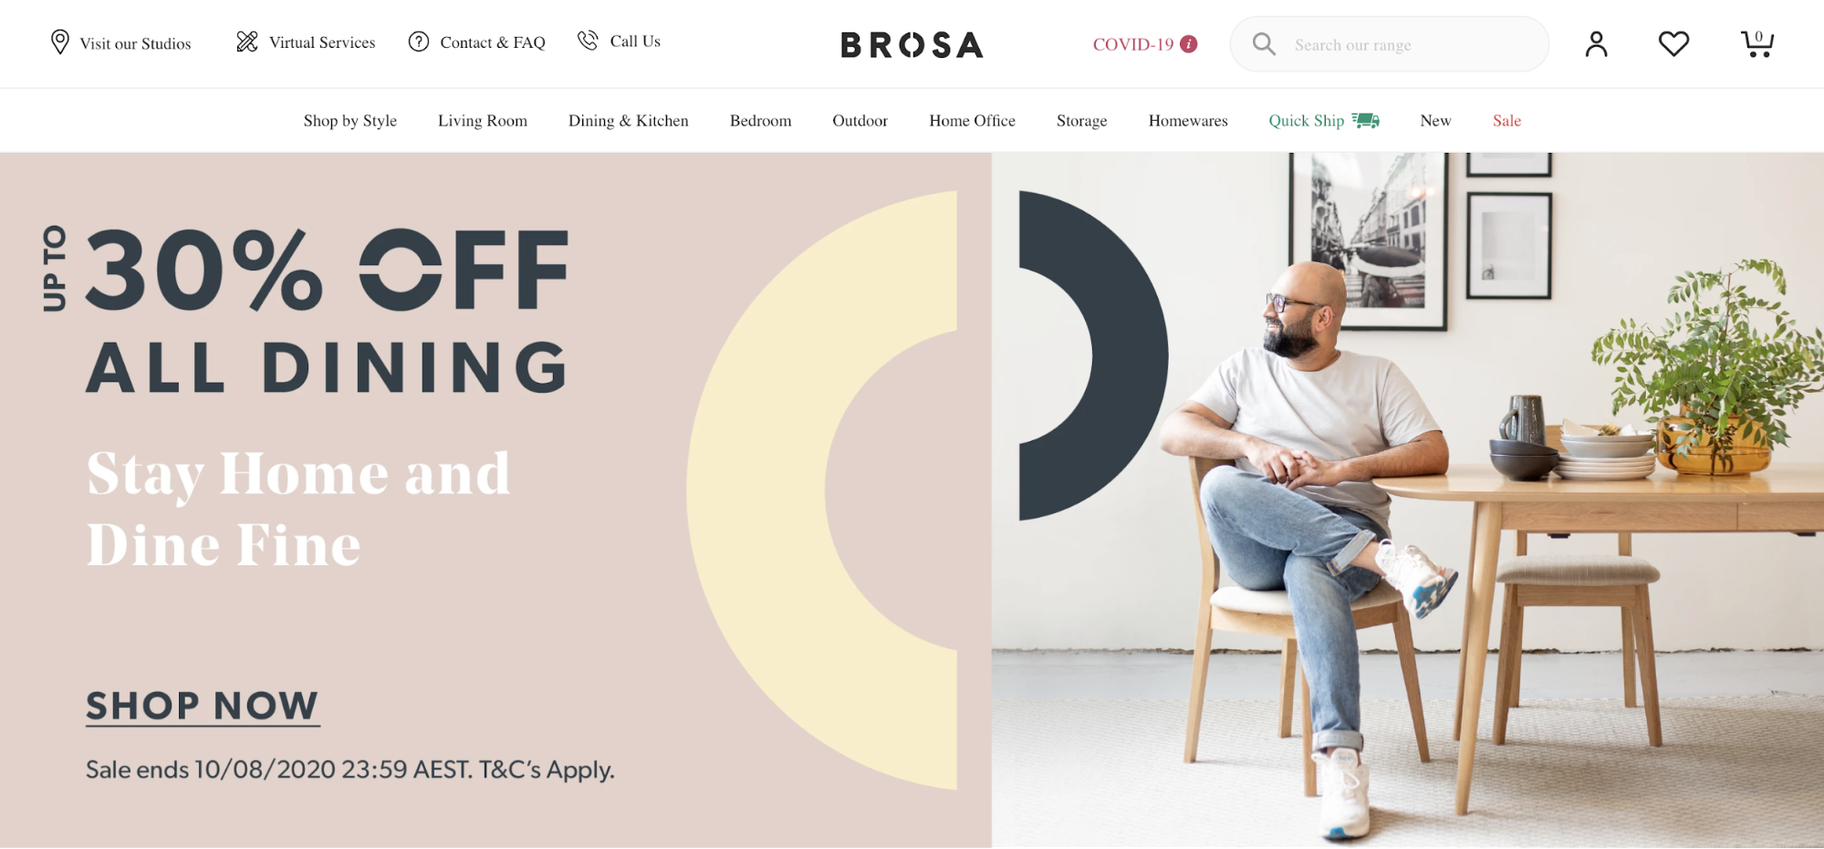 Small Business Website Example: Brosa